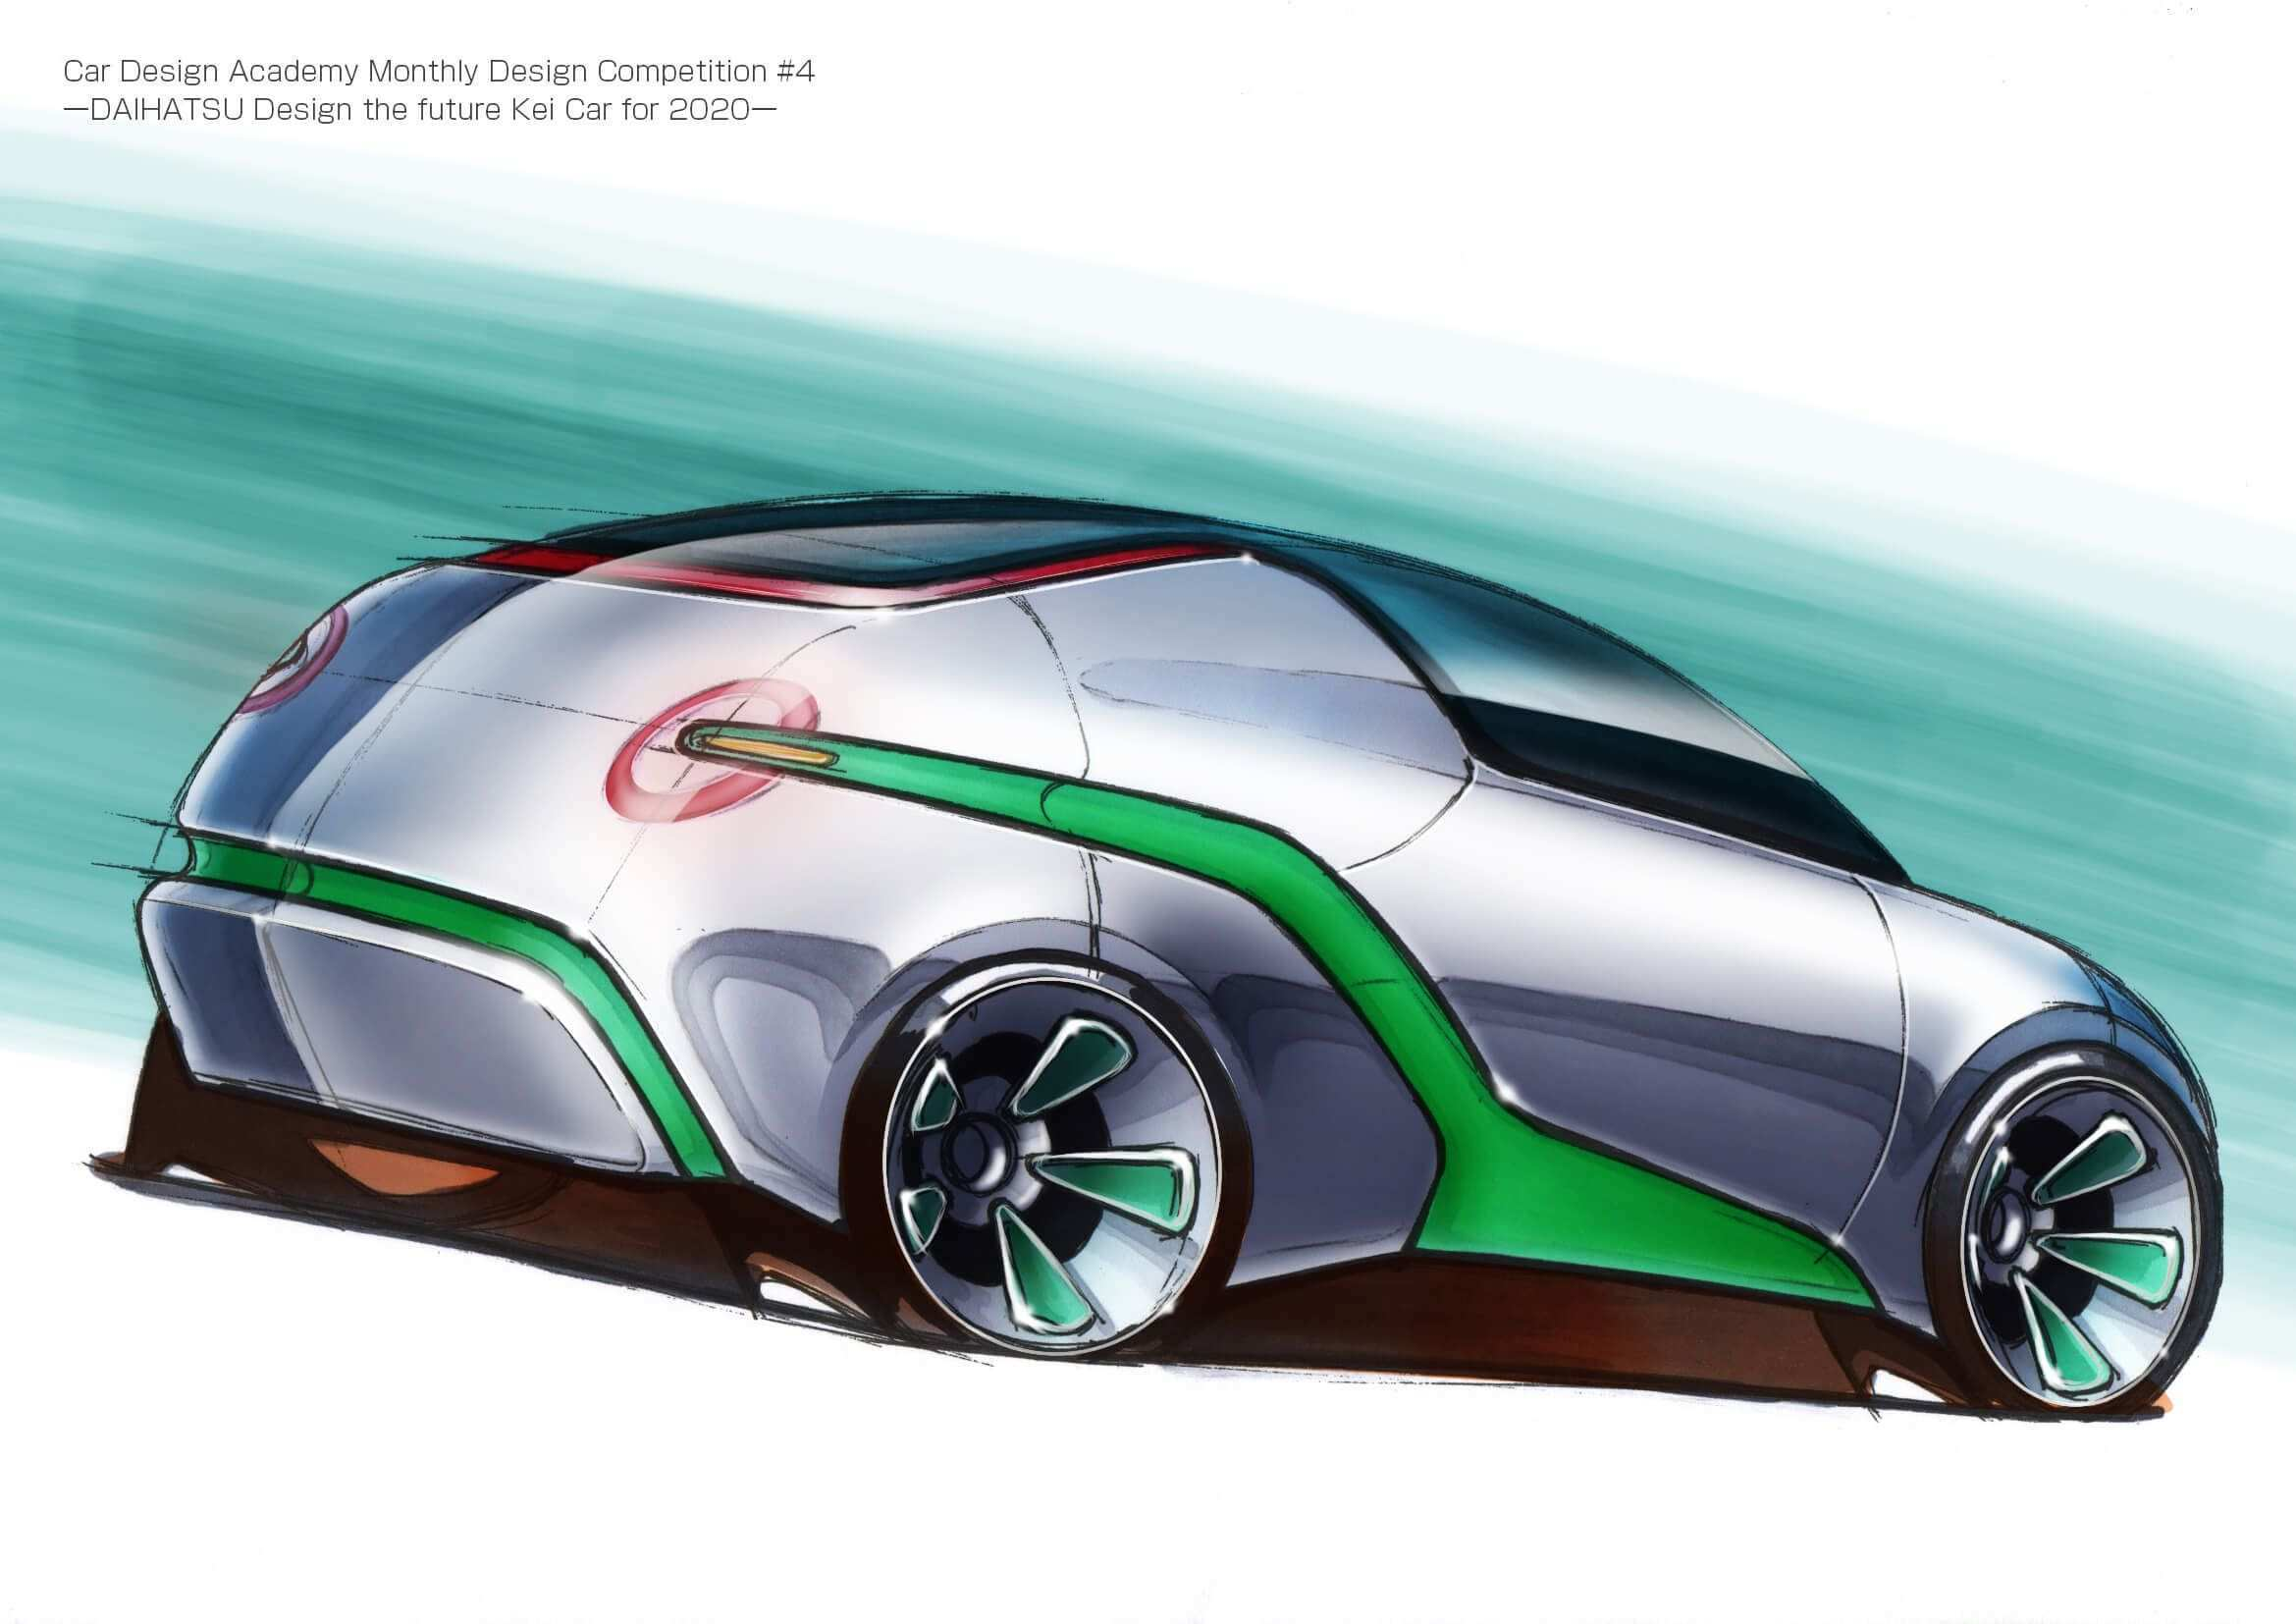 37 Concept of Toyota Design Competition 2020 Research New with Toyota Design Competition 2020